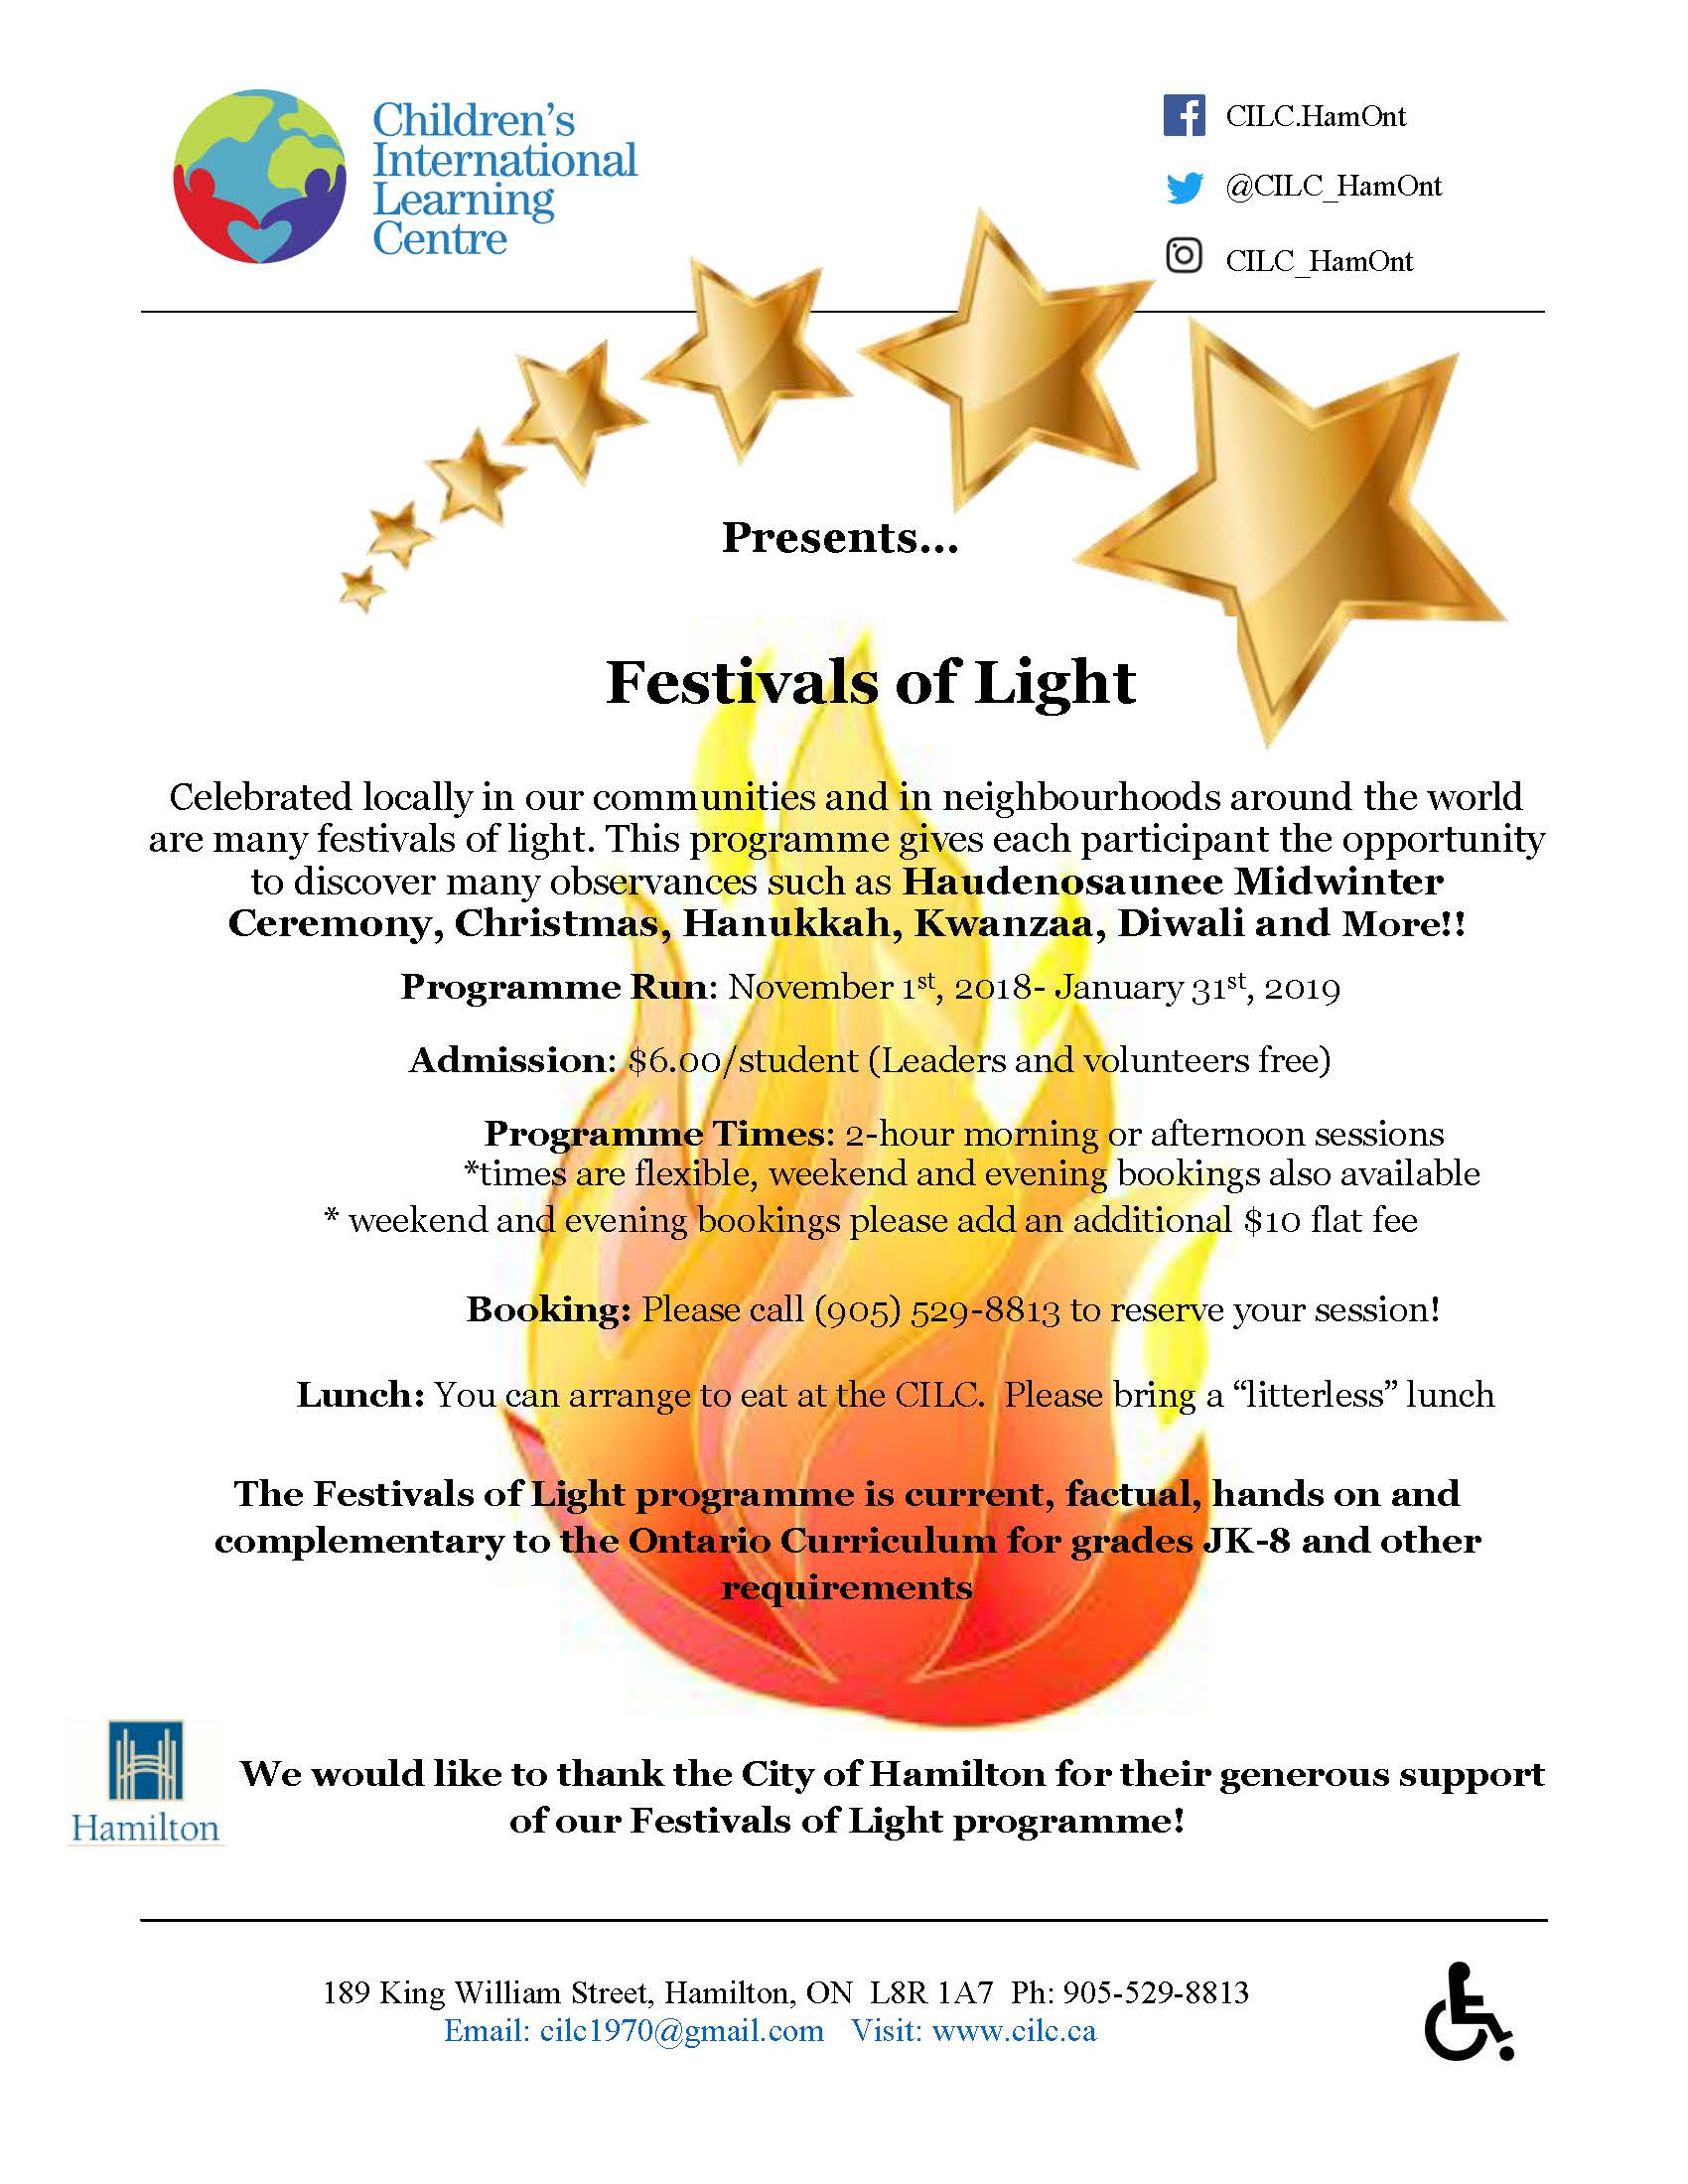 Festival of Lights 2018-2019